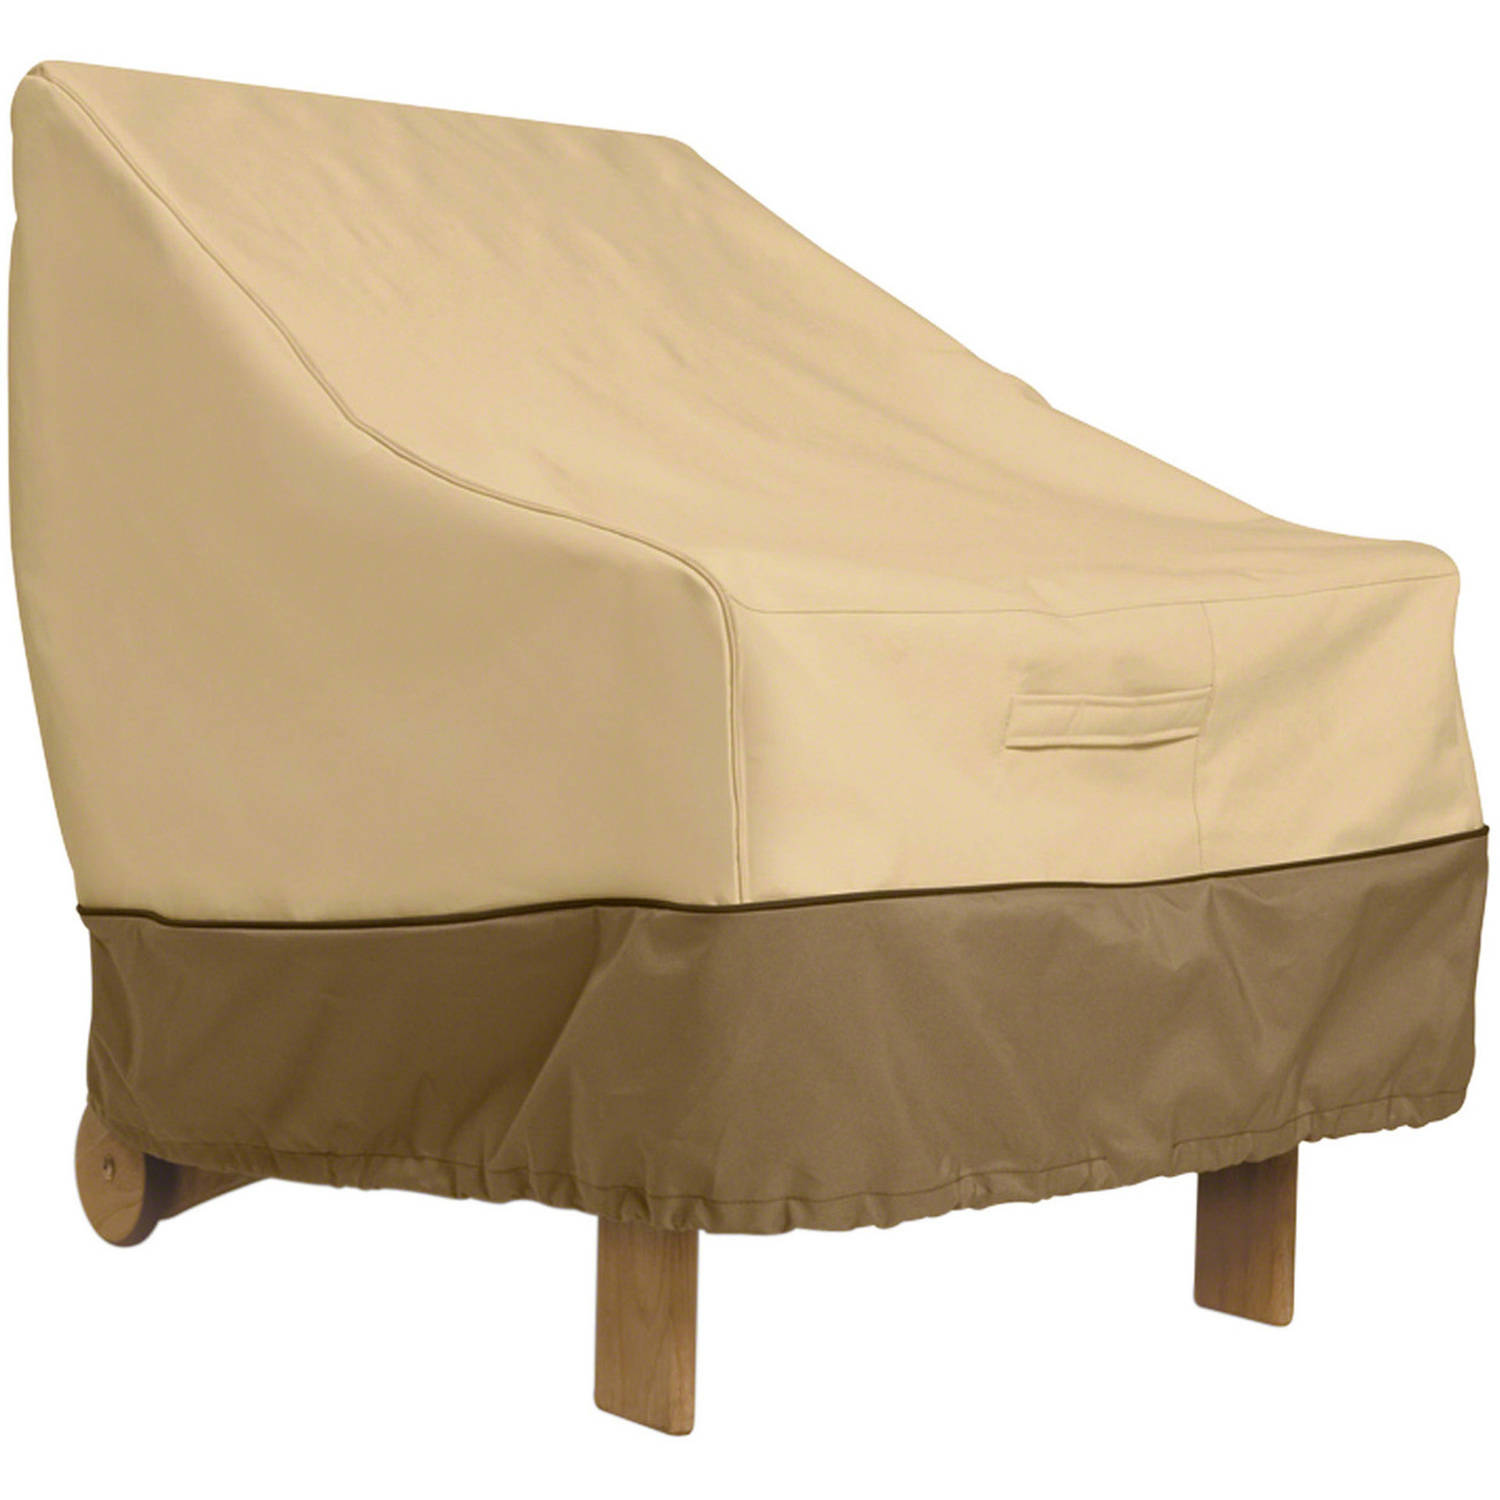 "Veranda Patio Lounge Chair/Club Chair Cover - Outdoor Furniture Cover, Fits Chairs 35""L x 38""D"